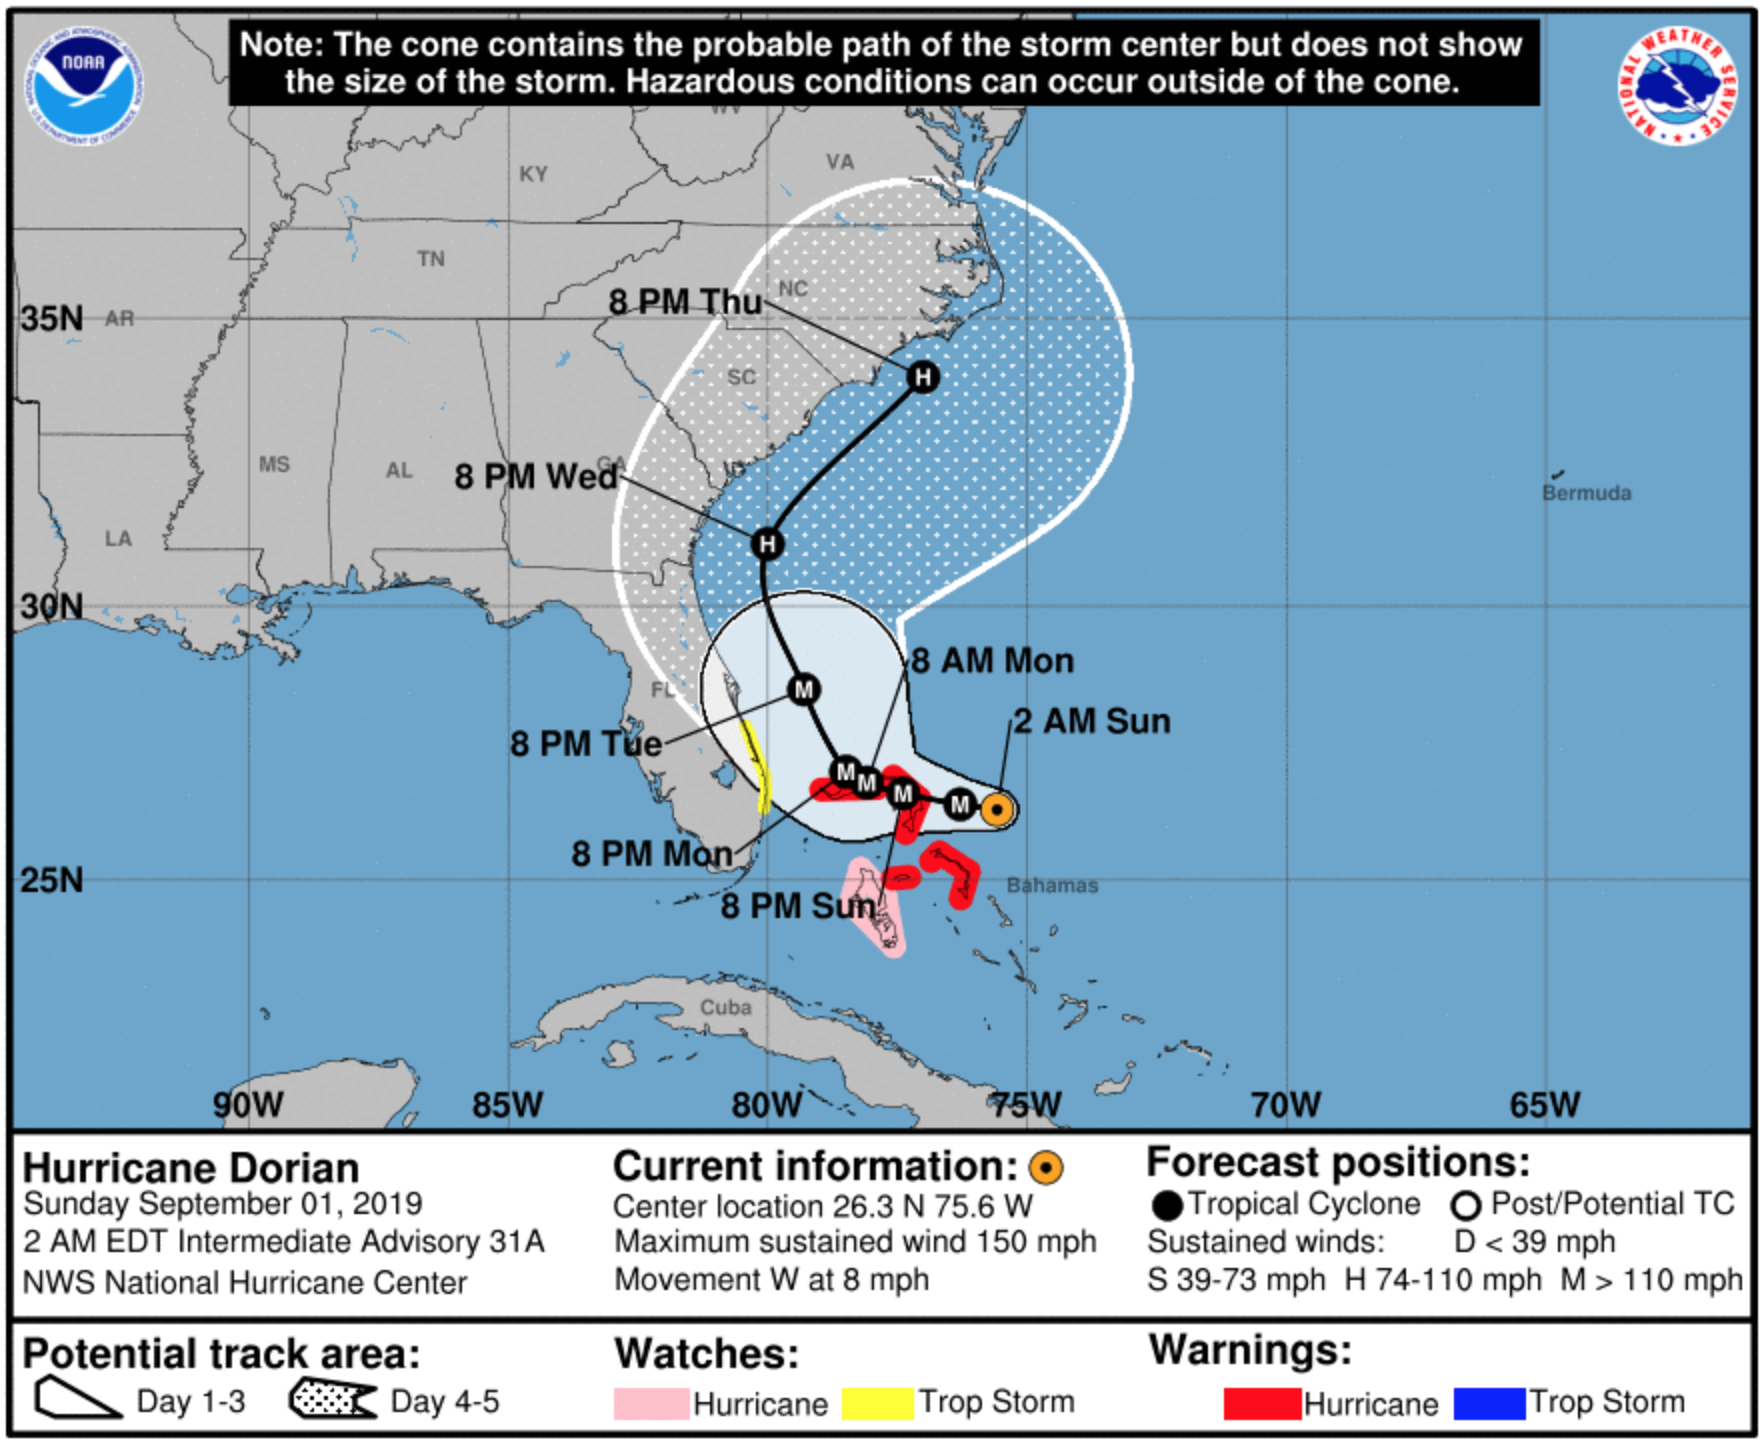 By 30 August the forecast was already tracking northward, not westward. So by 1 September the idea that the hurricane would hit Alabama was just nonsense.